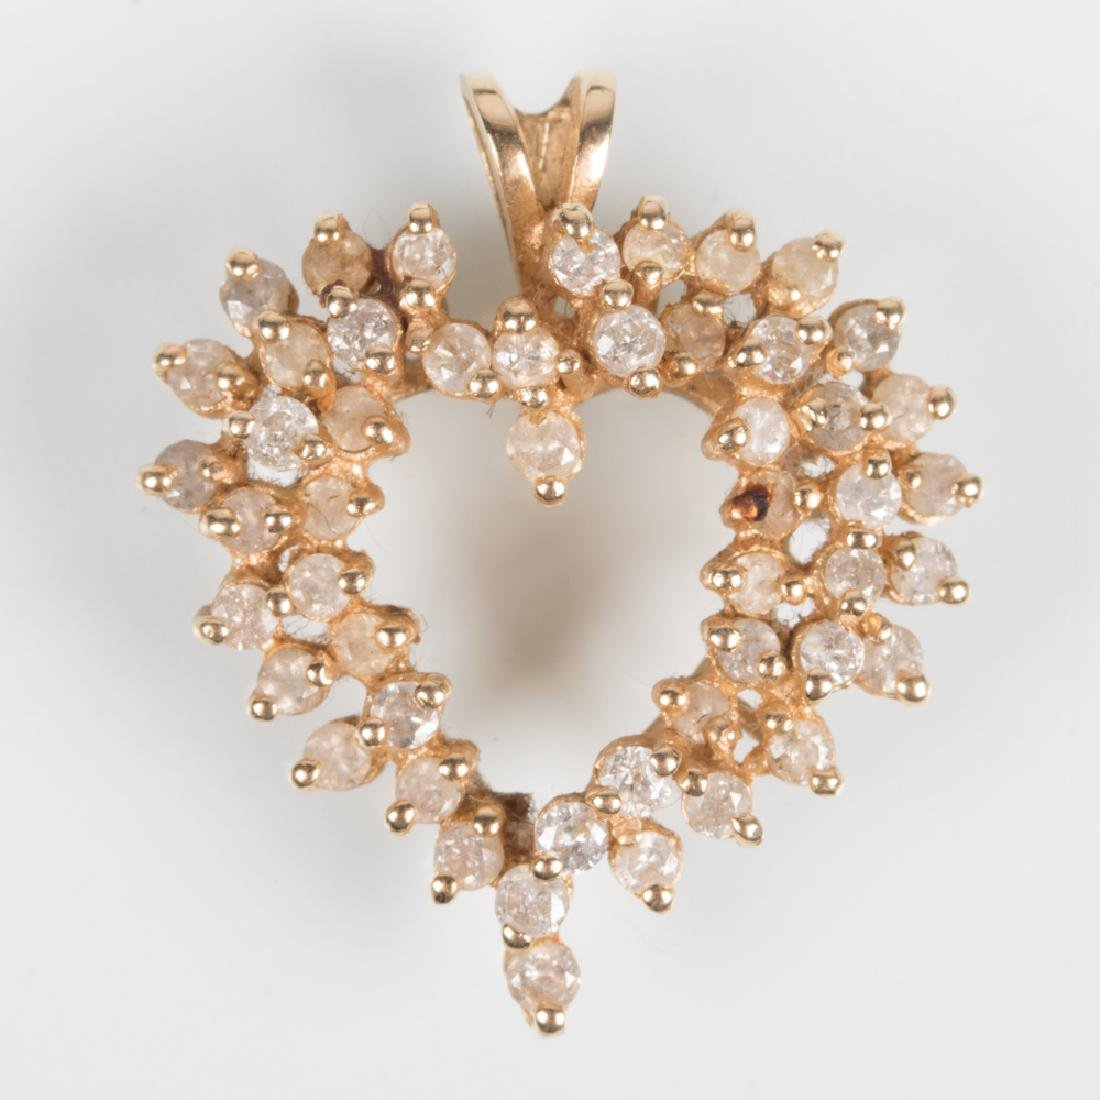 A 14kt. Yellow Gold and Diamond Heart Form Pendant,